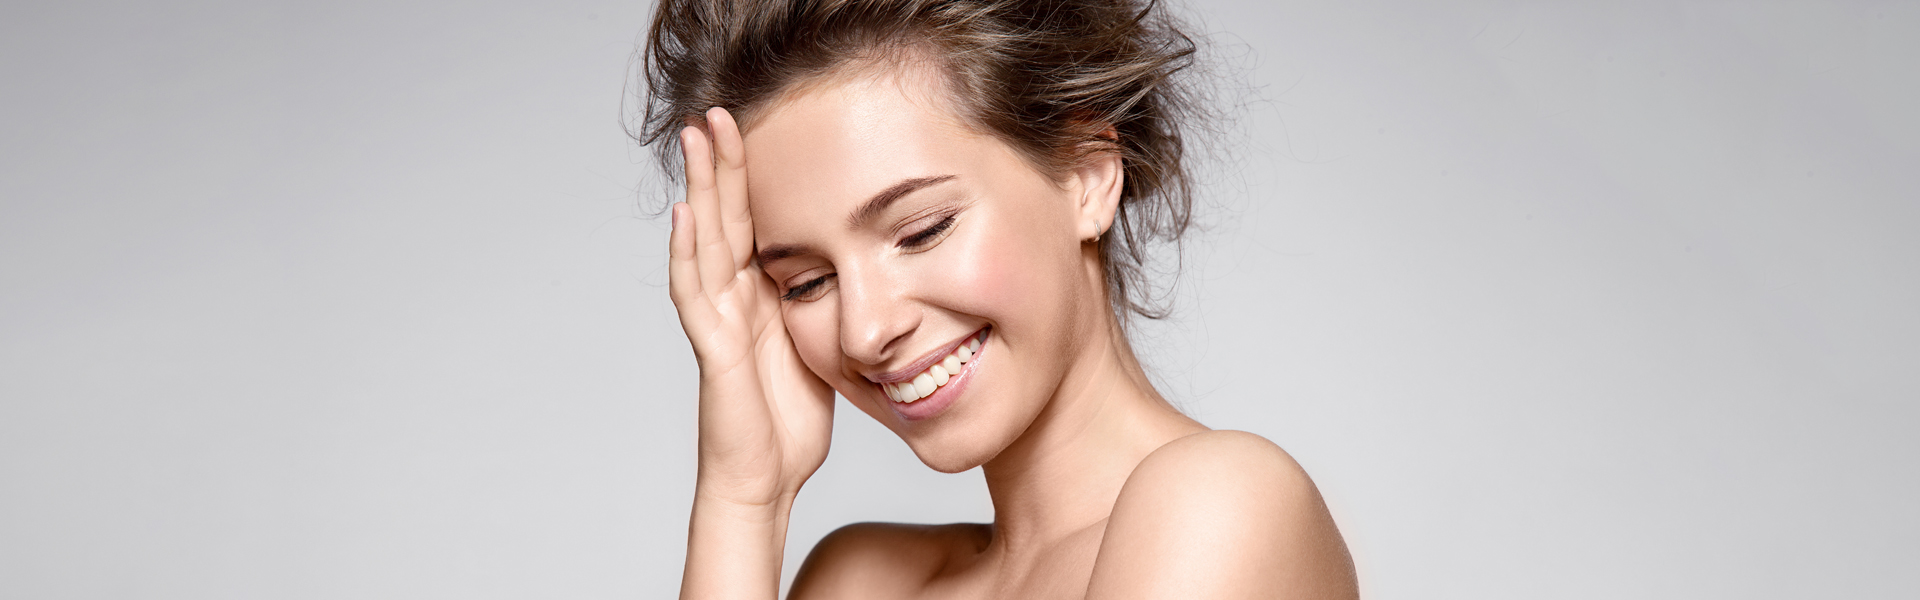 Walk into the New Year with a Beautiful Smile After Getting Dental Bridges